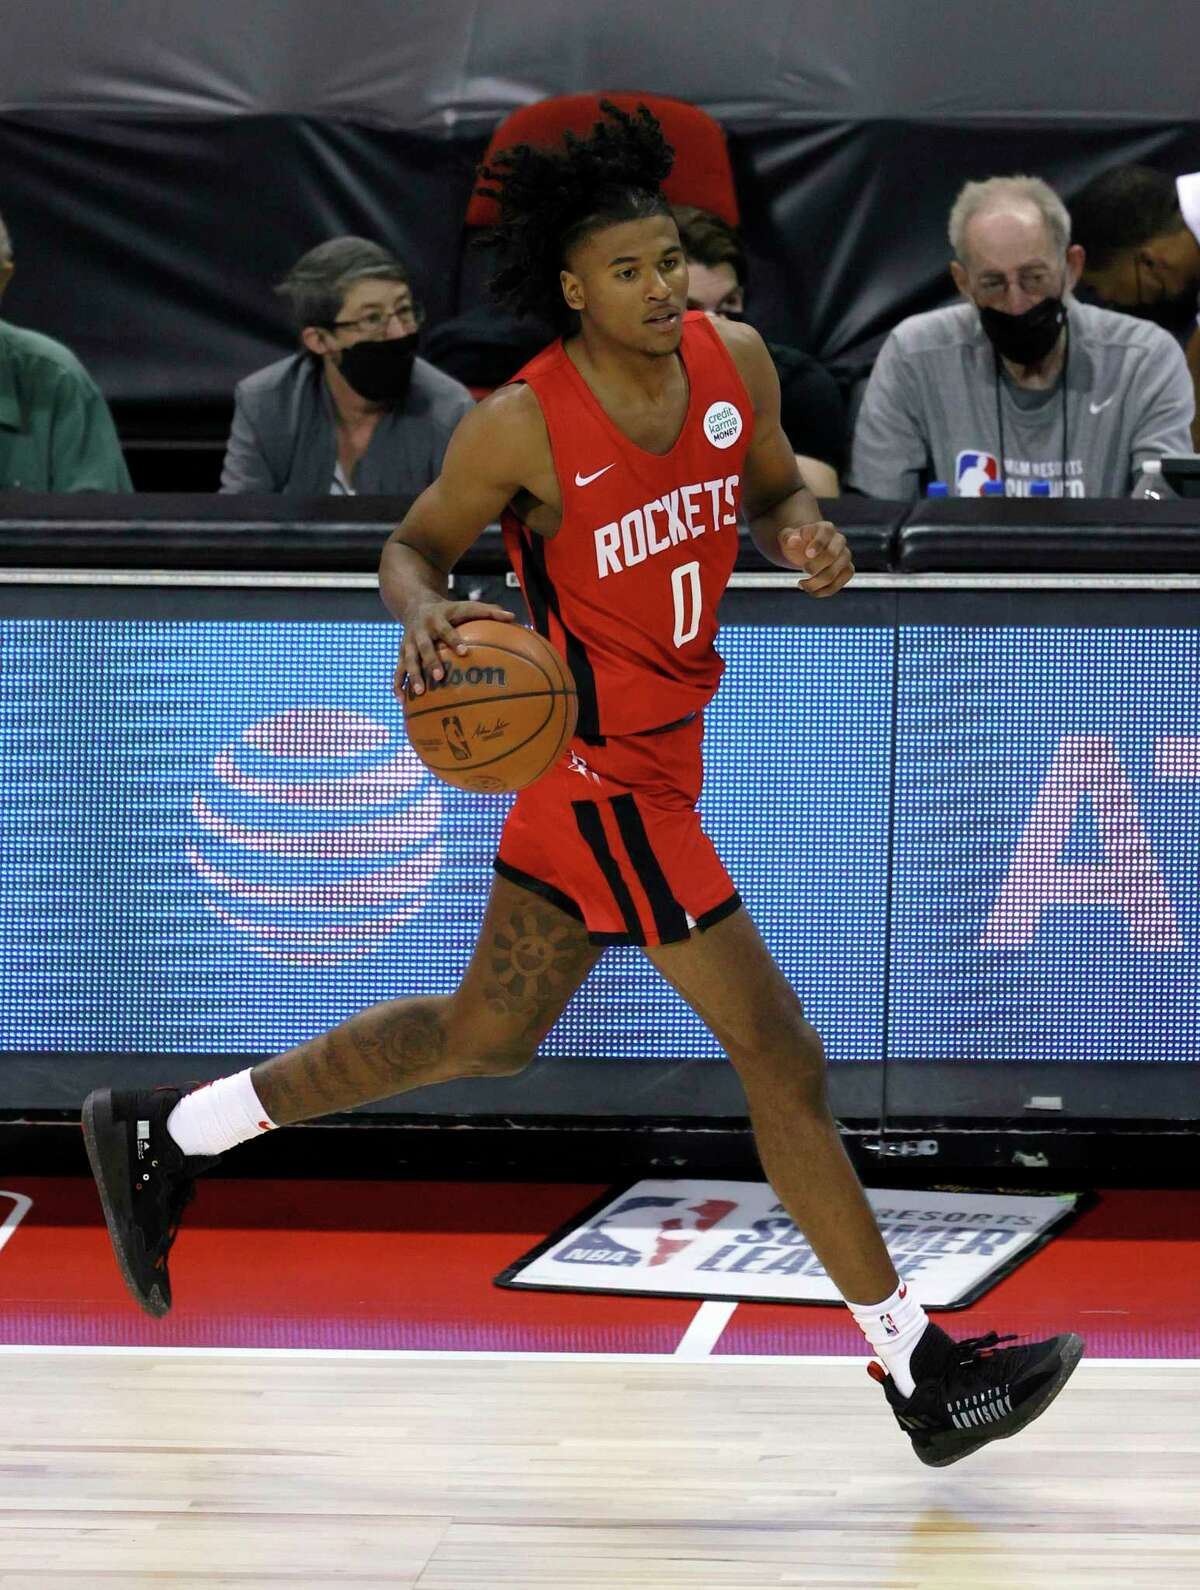 Jalen Green brings the ball up the court for the Rockets against the Cavaliers during a Summer League game at the Thomas & Mack Center on Sunday, Aug. 8, 2021 in Las Vegas, Nevada.